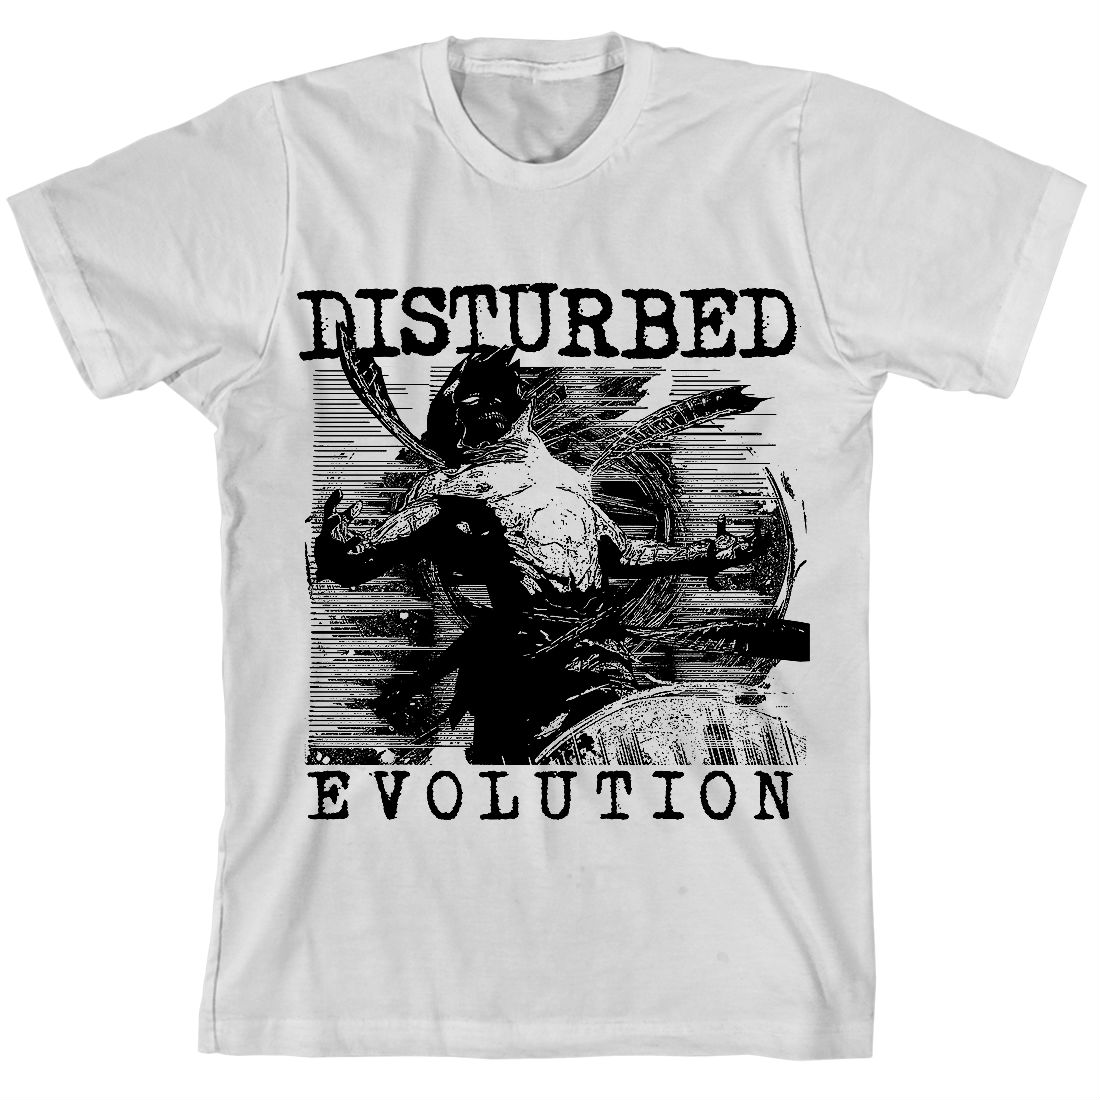 Evolution Sketch White T-shirt